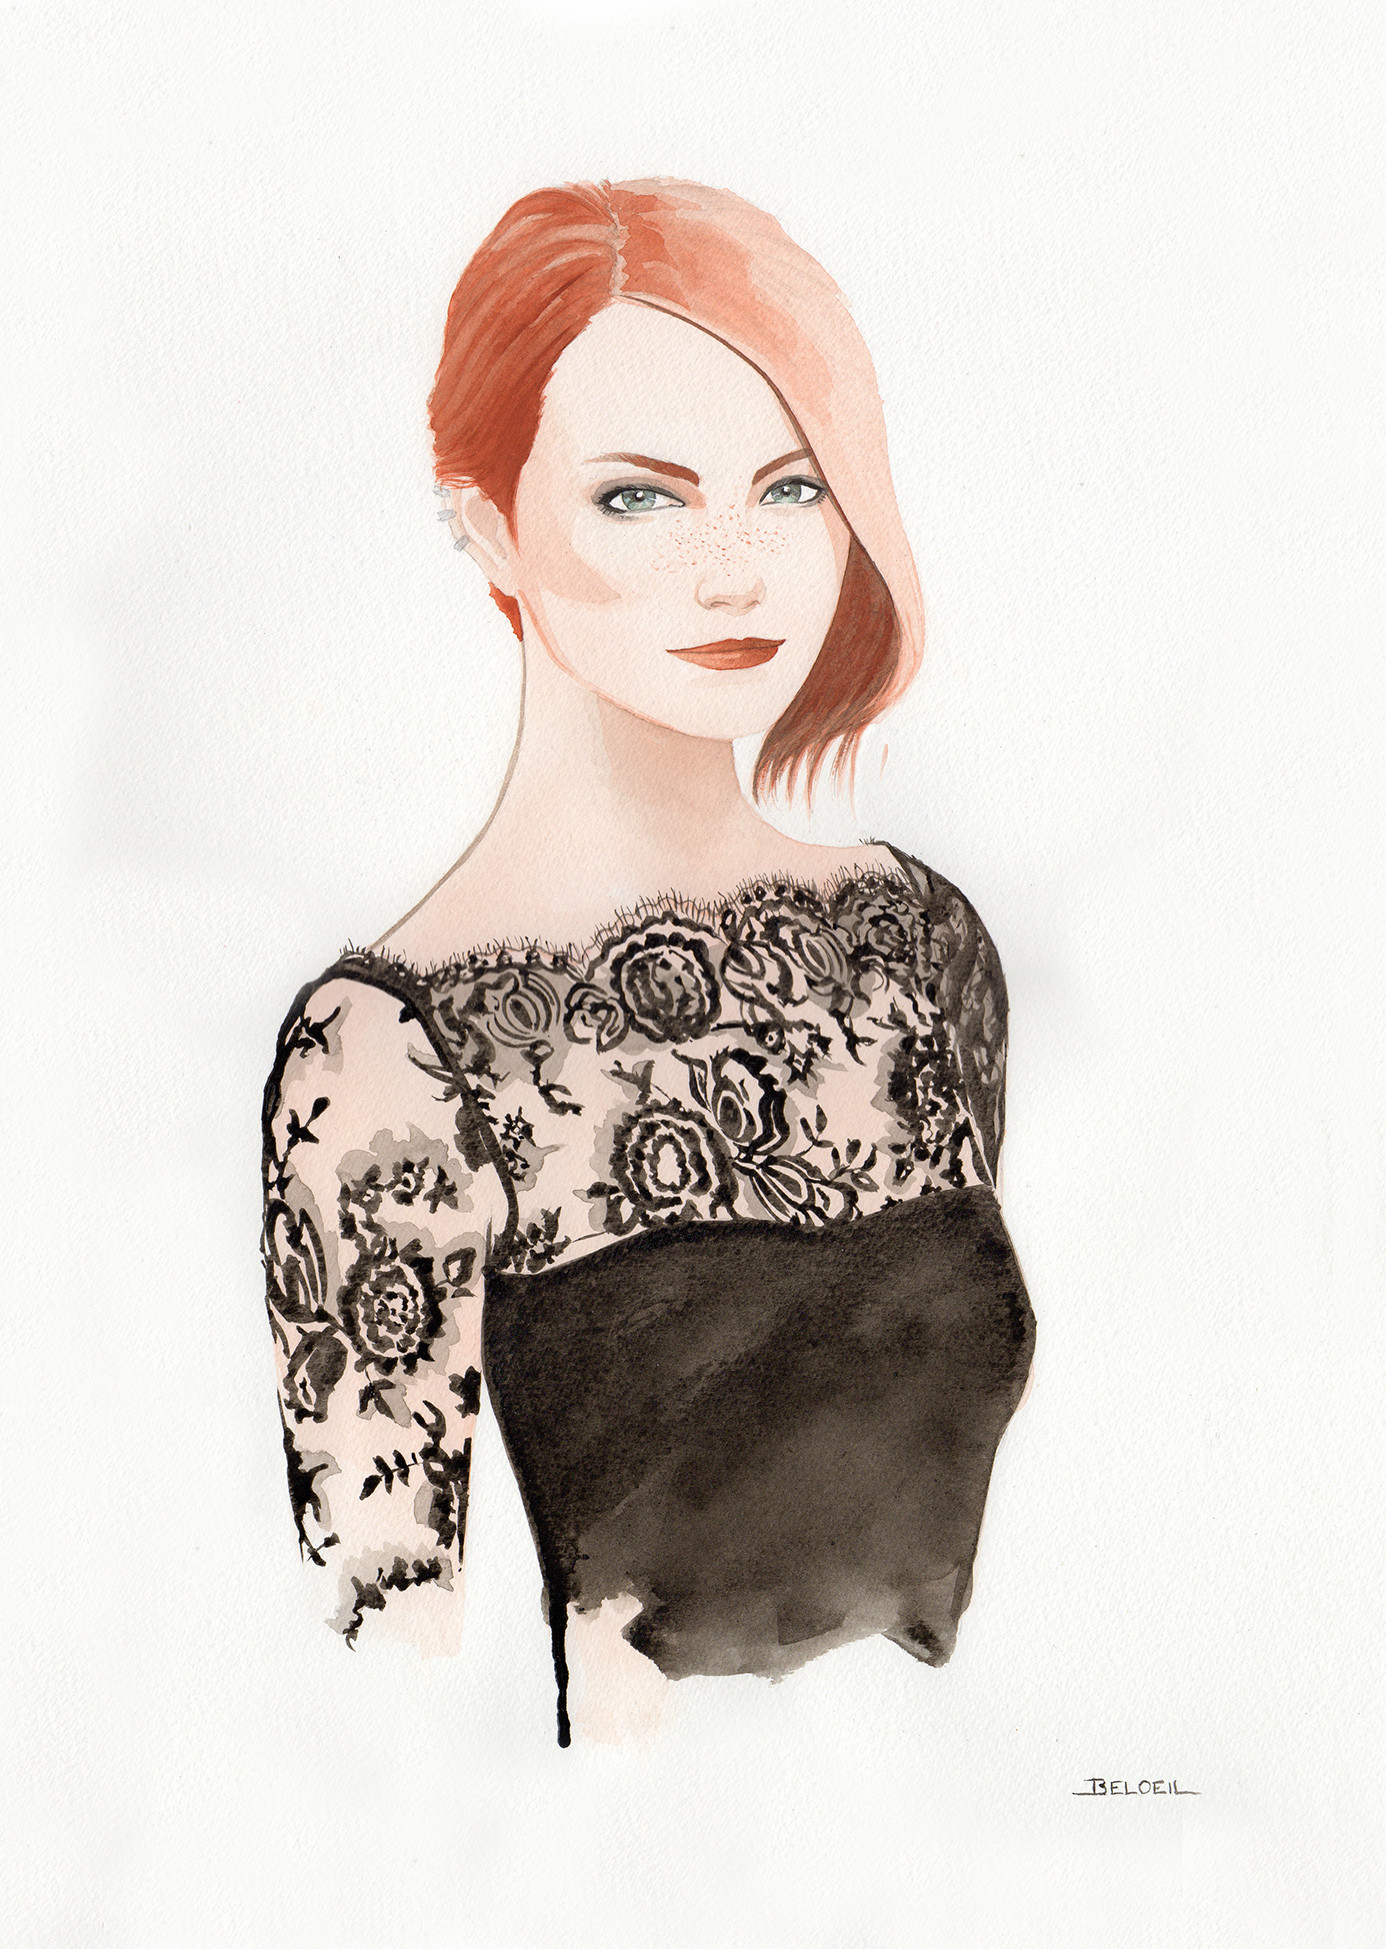 Luxury lingerie Camille Roucher Paris  drawn by Geoffrey Beloeil, illustrator & storyboard artist. Fashion illustration.